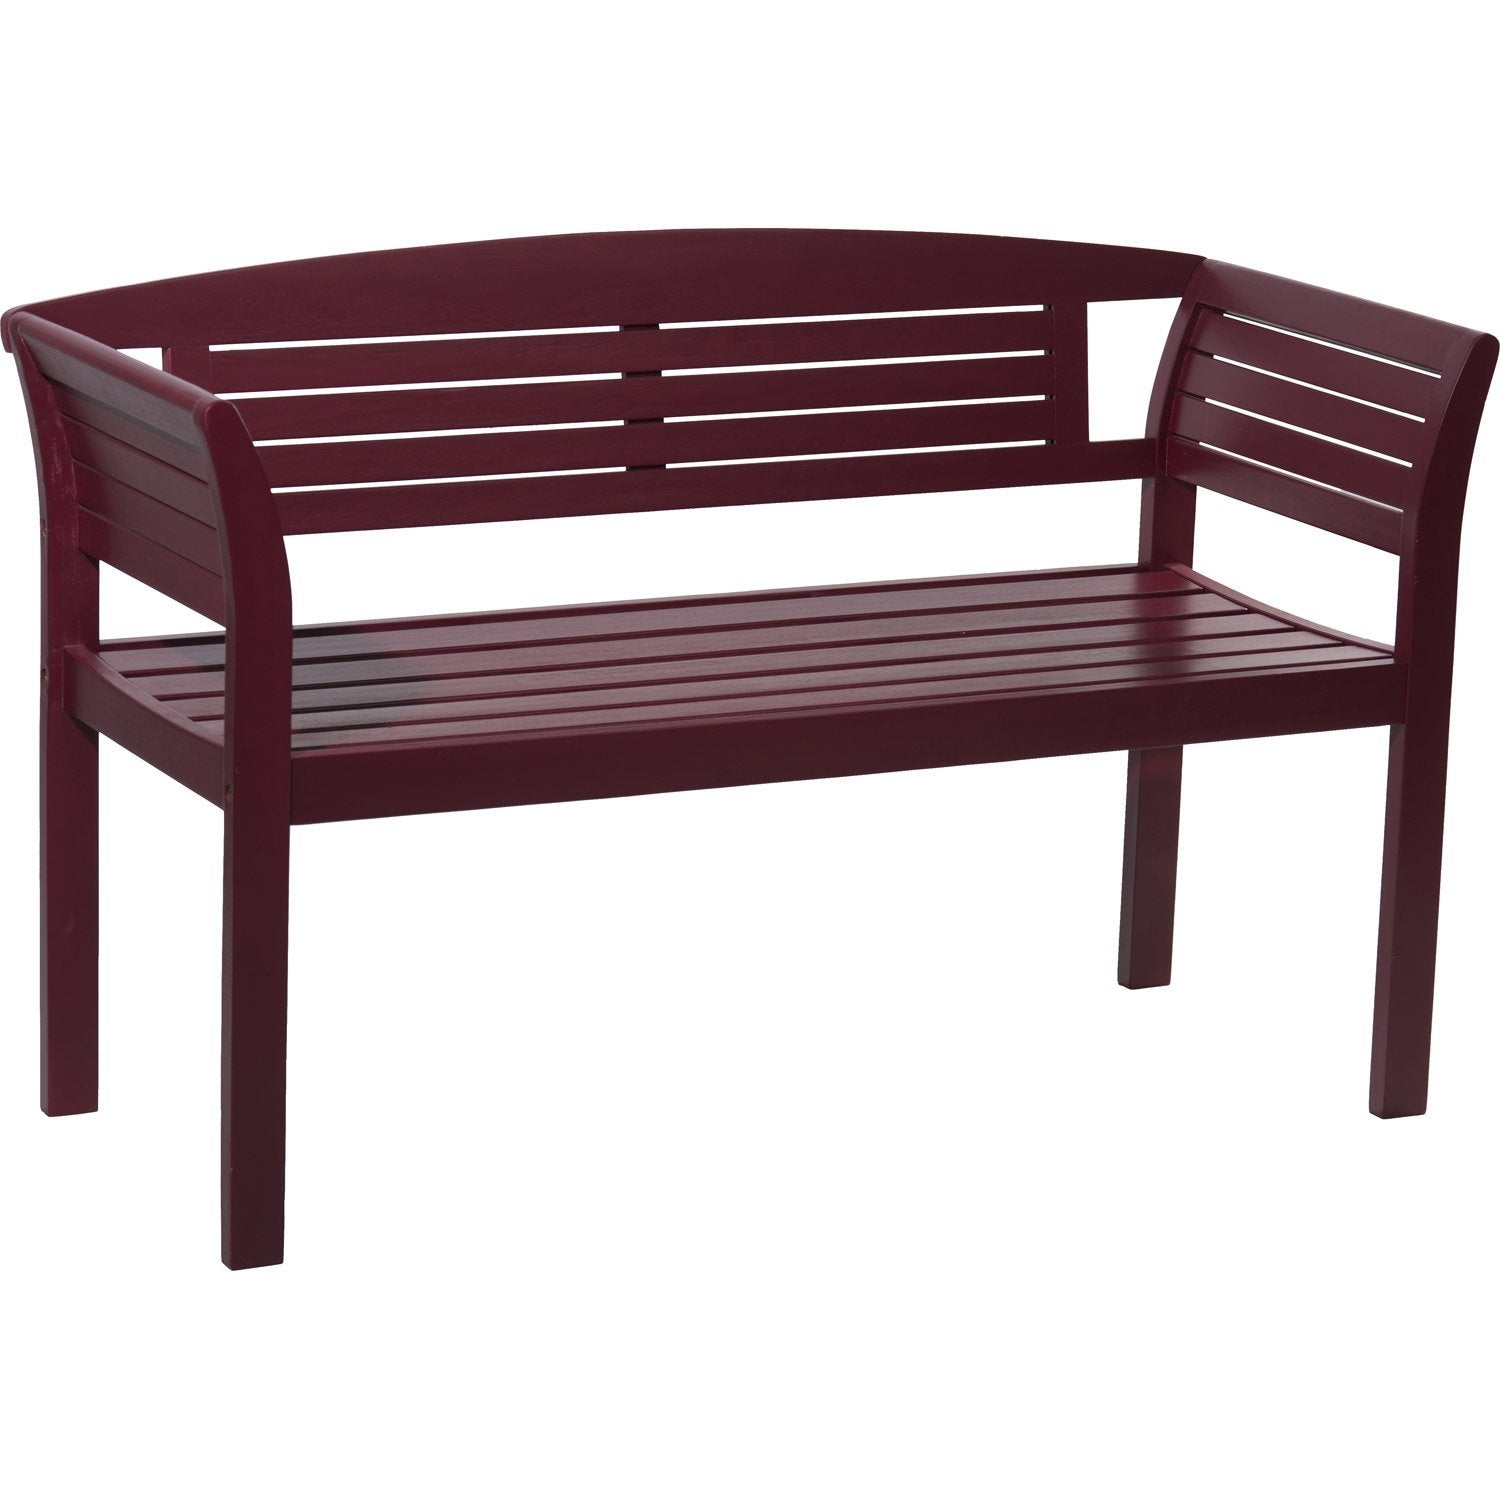 Banc 2 places de jardin en bois new york rouge leroy merlin for Banc de jardin leroy merlin